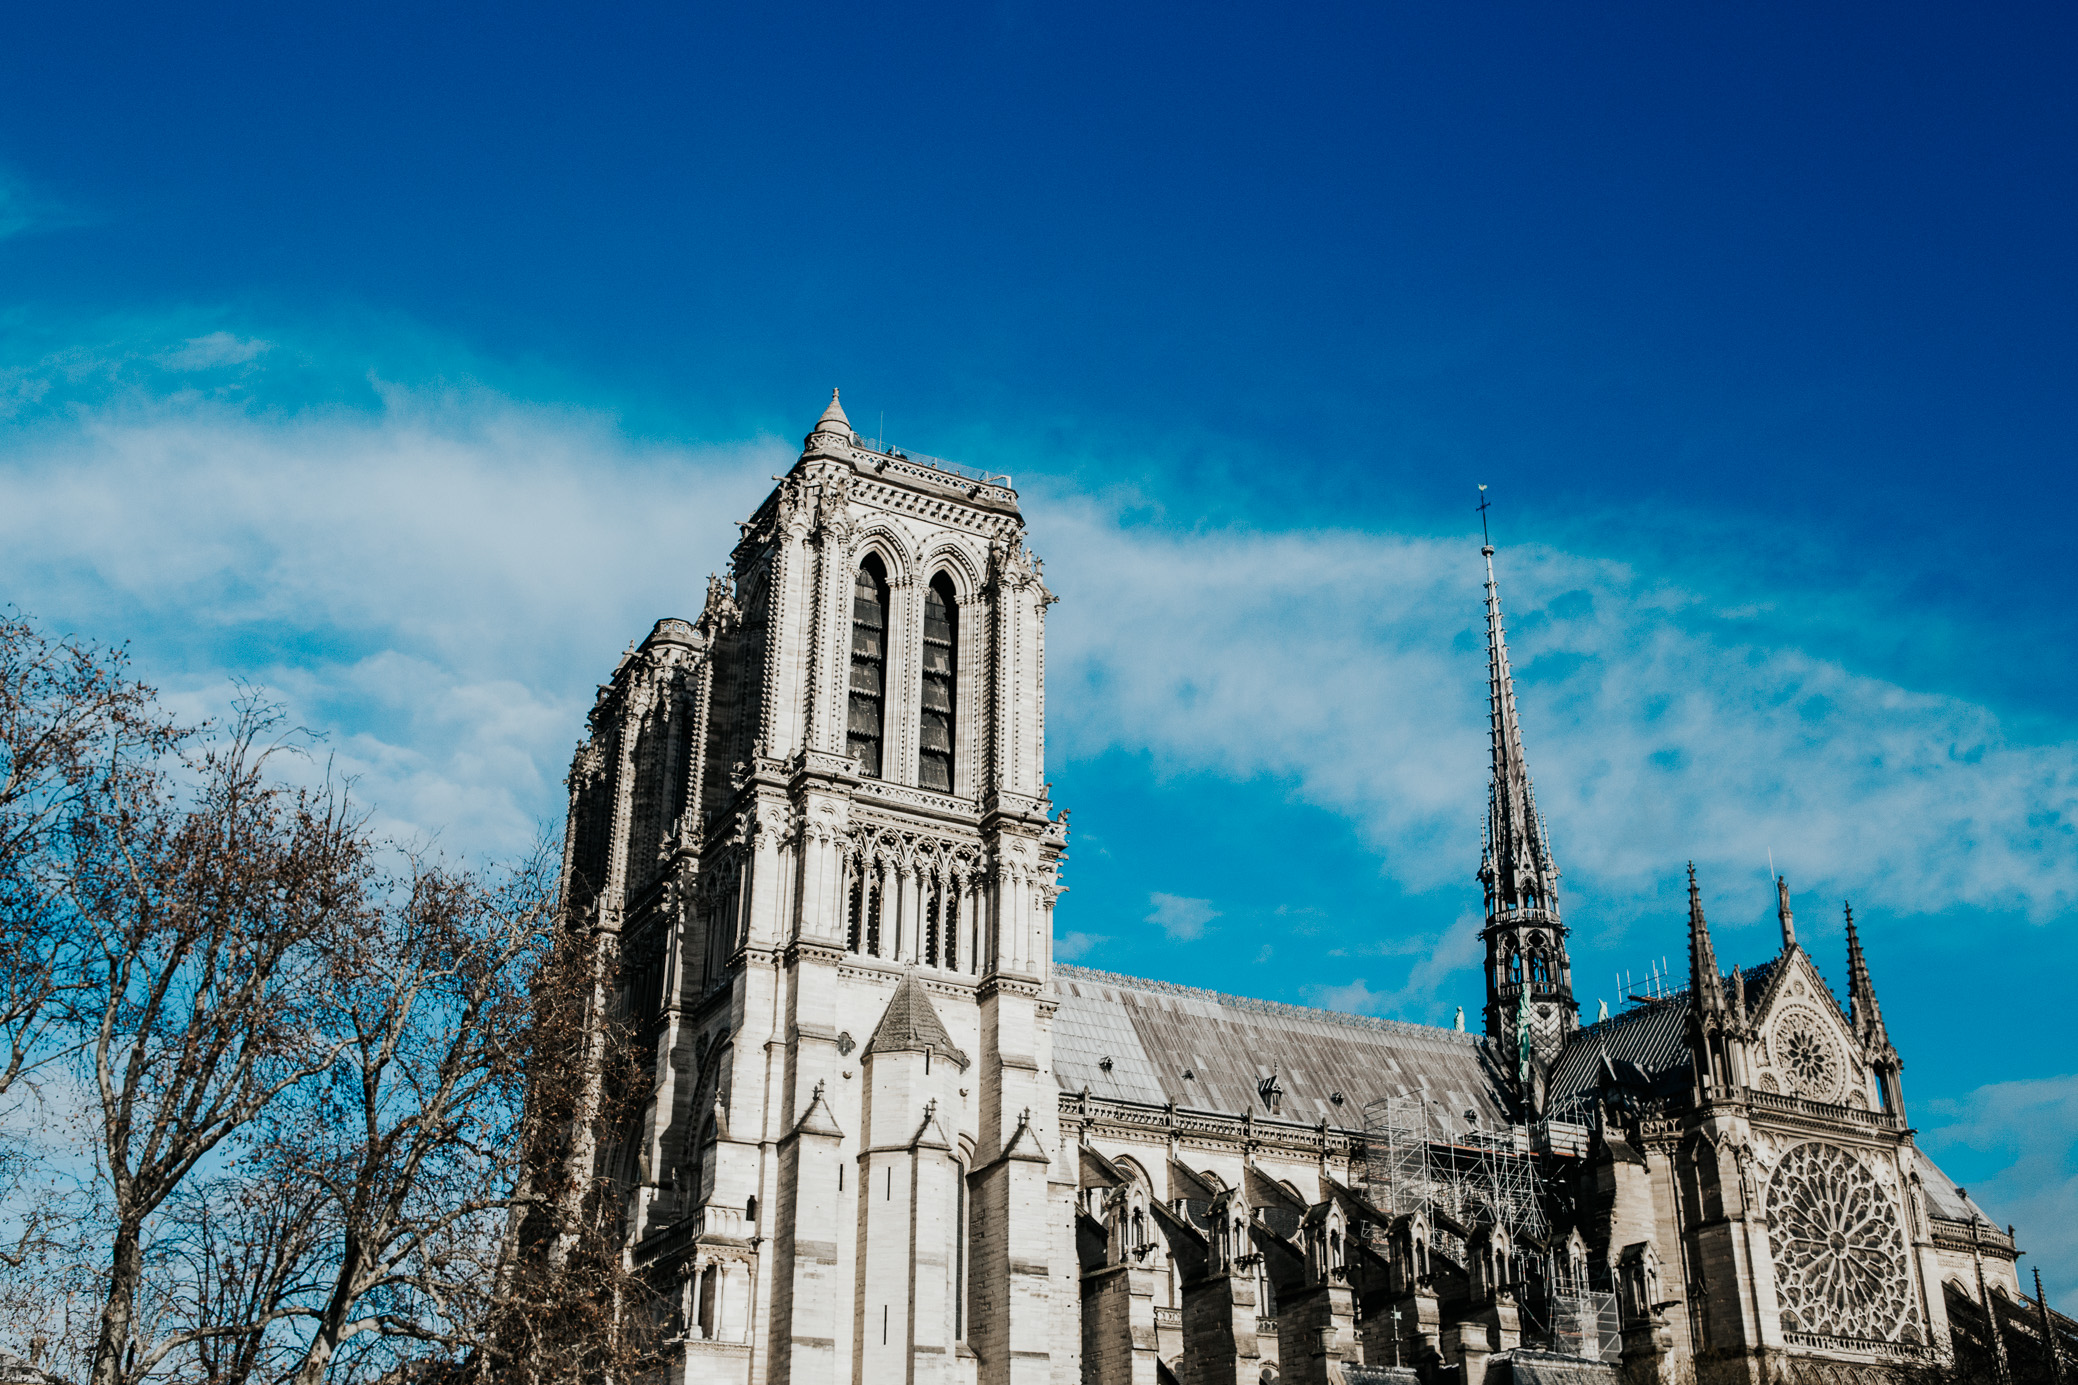 Notre Dame Cathedral | Paris, France | December 9th, 2018 | (Photo by David A. Smith / DSmithScenes)